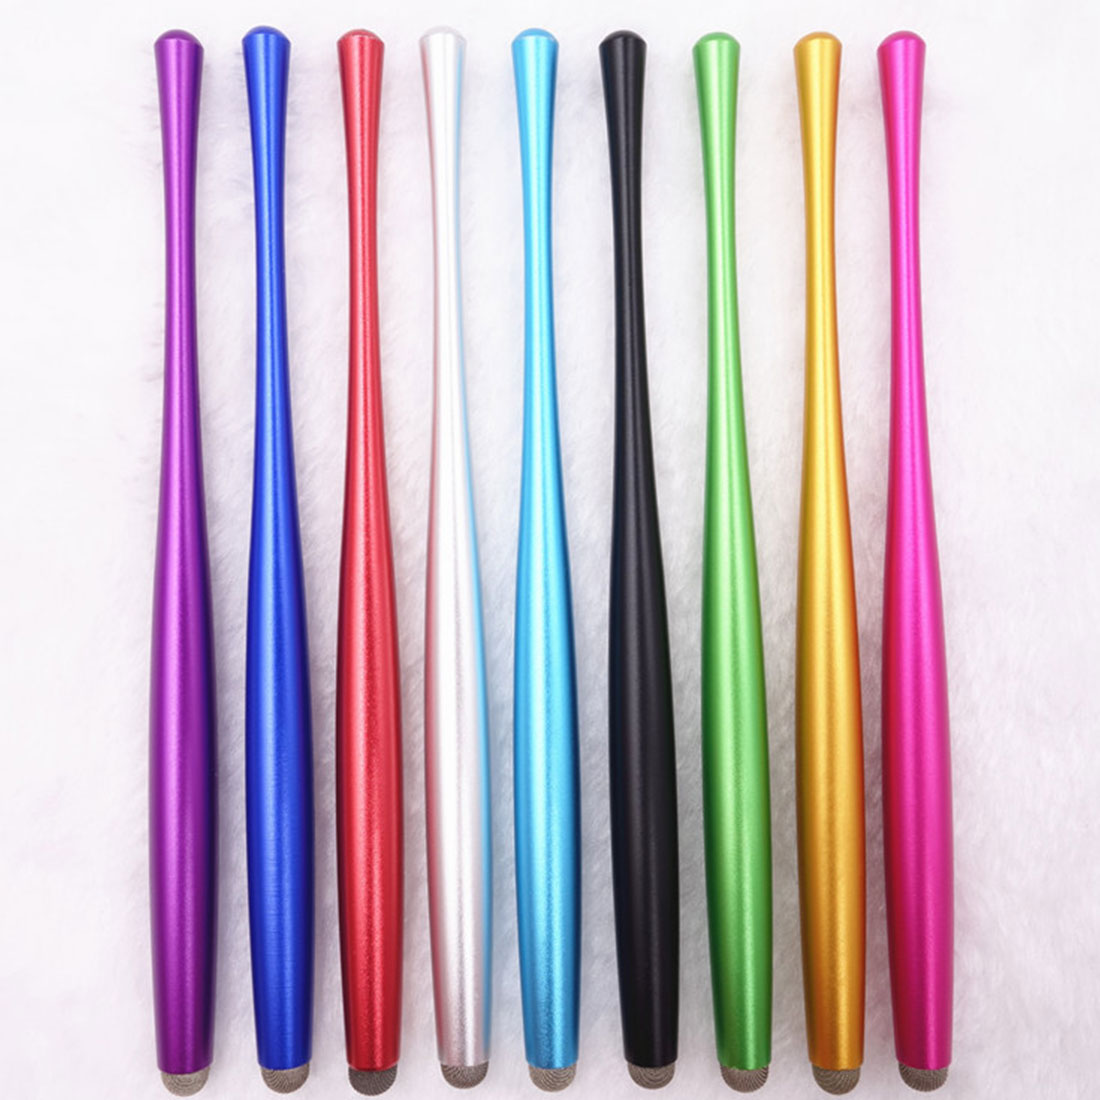 Universal Capacitive Stylus Pen Long Section Waistline Pen Touch Screen Pen For IPhone IPad Android